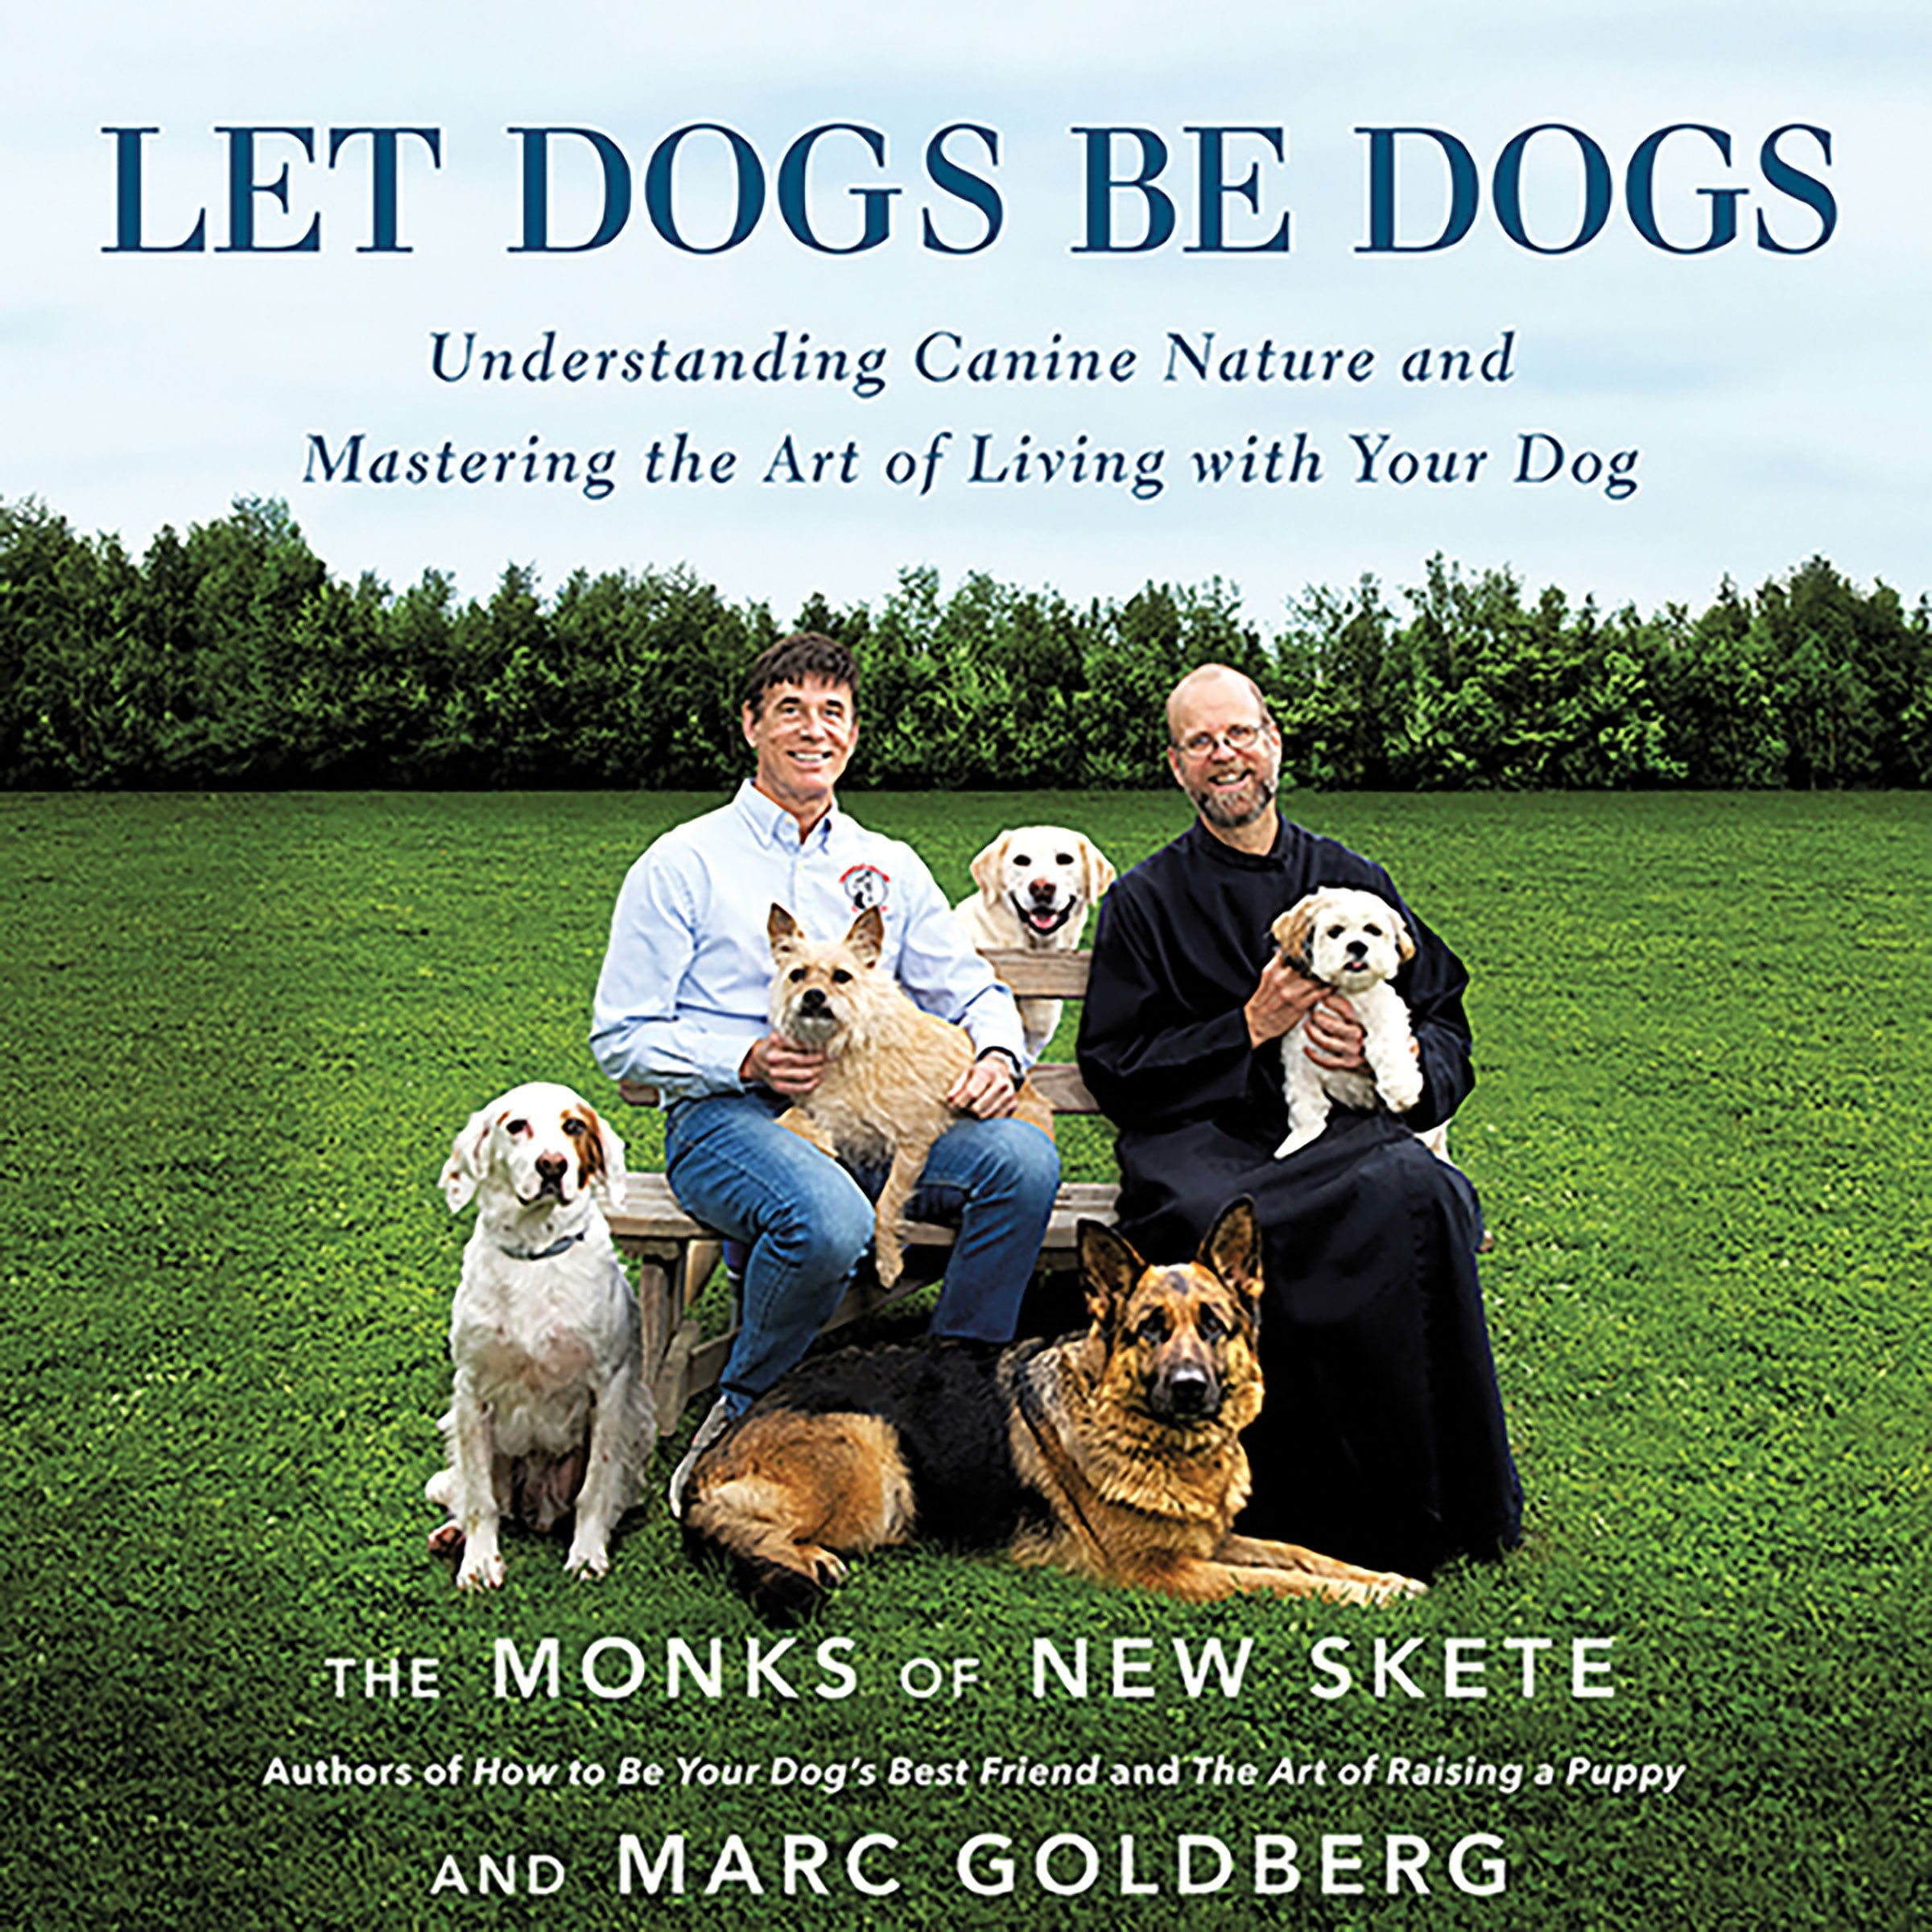 Let Dogs Be Dogs: Understanding Canine Nature and Mastering the Art of Living with Your Dog by Hachette Audio (Image #1)